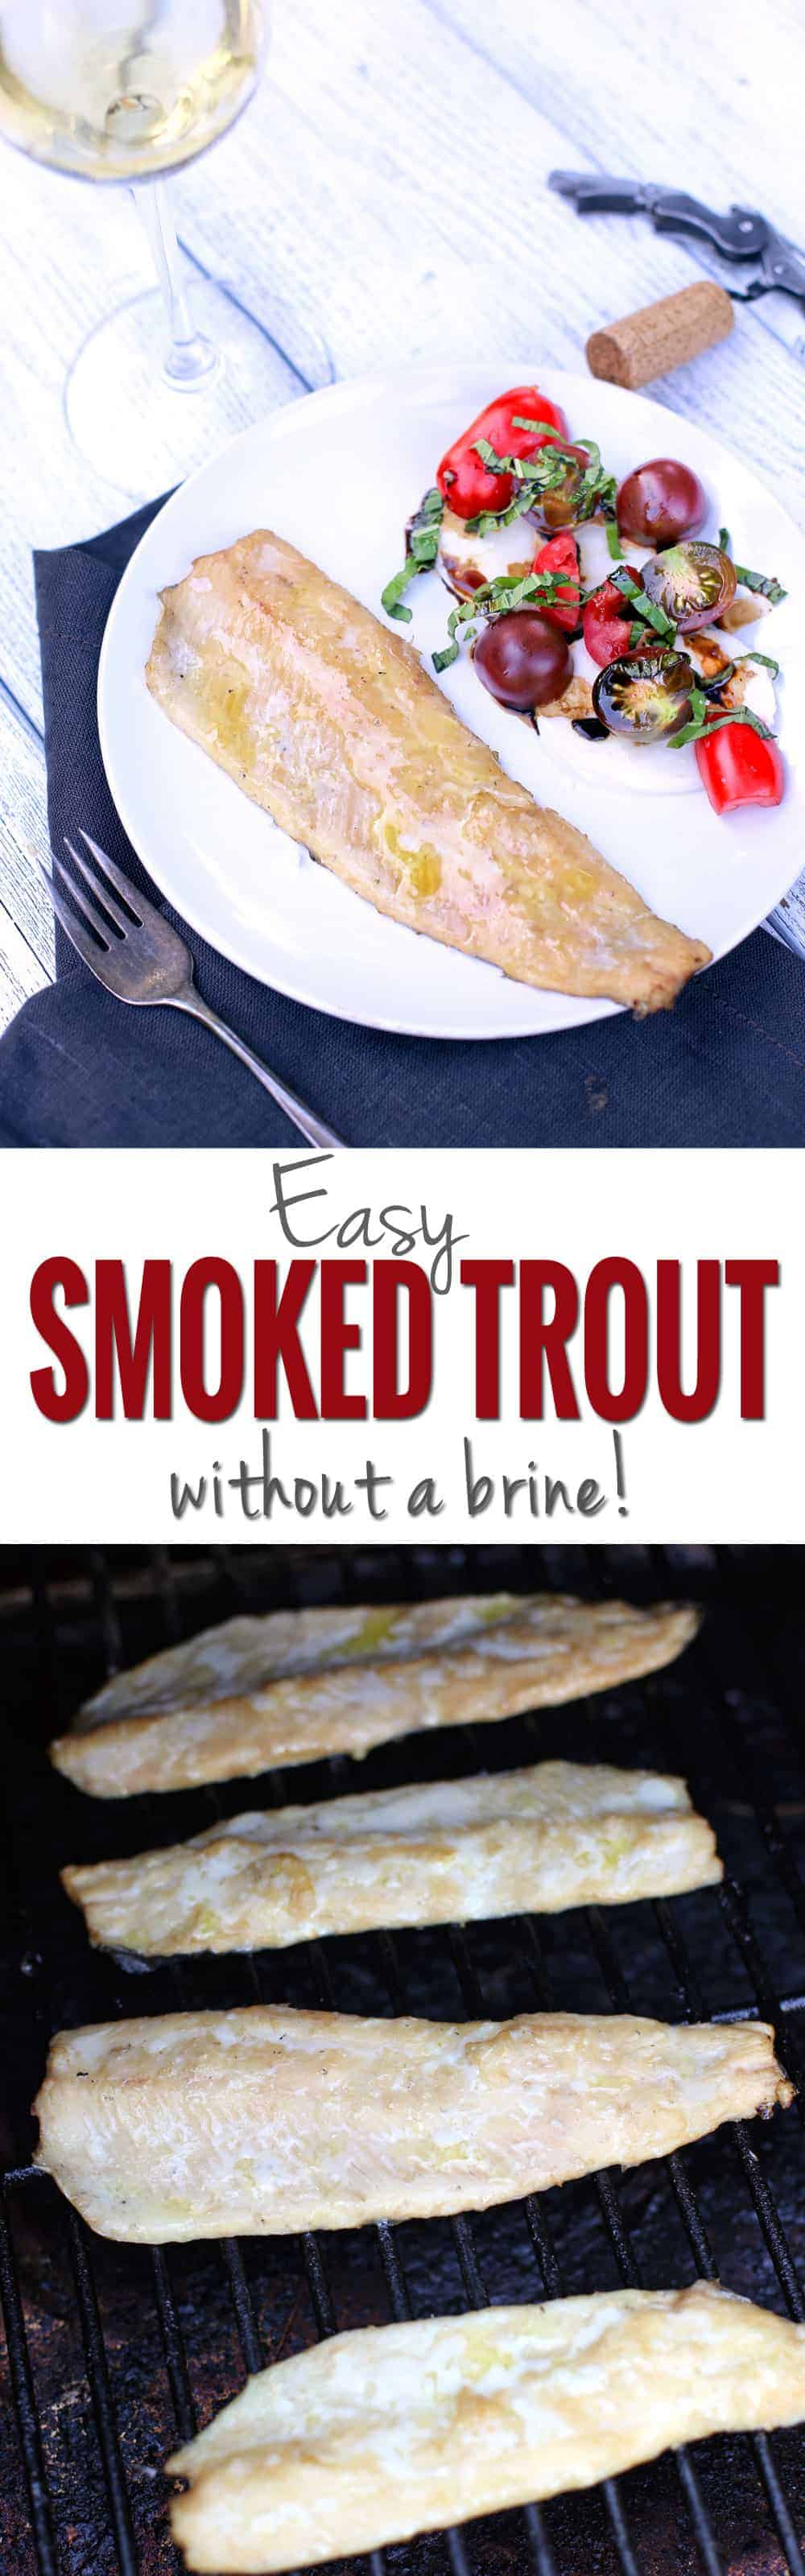 Easy Smoked Trout without a brine, and Wine Pairing. A simple, light, healthy, and super quick (!) dinner idea for your smoker or grill.